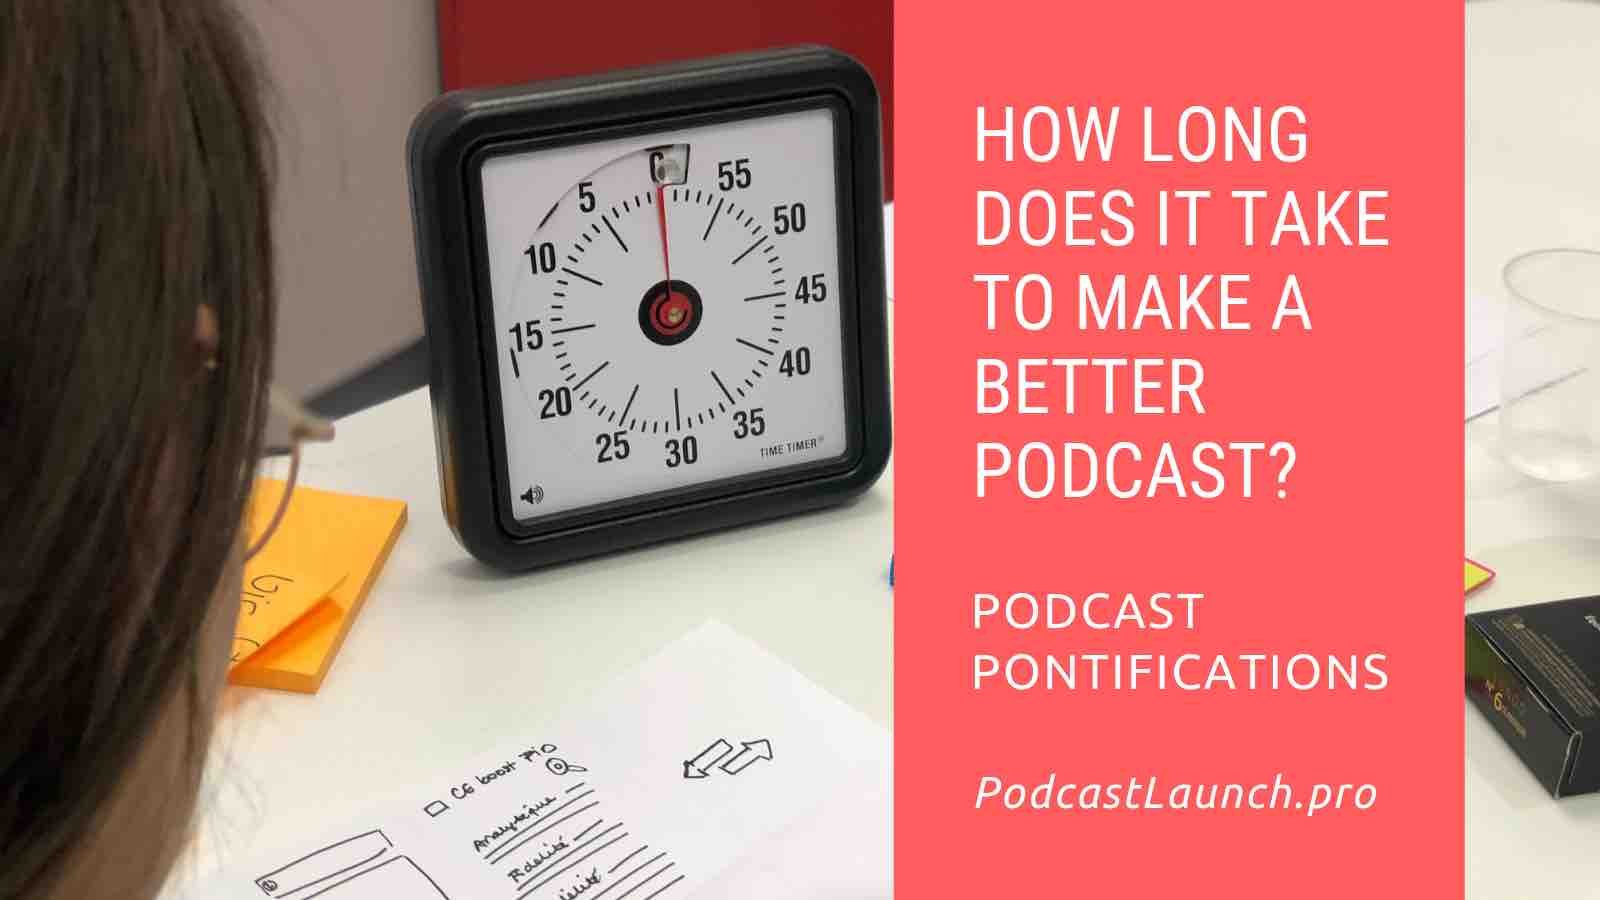 How Long Does It Take To Make A Better Podcast?